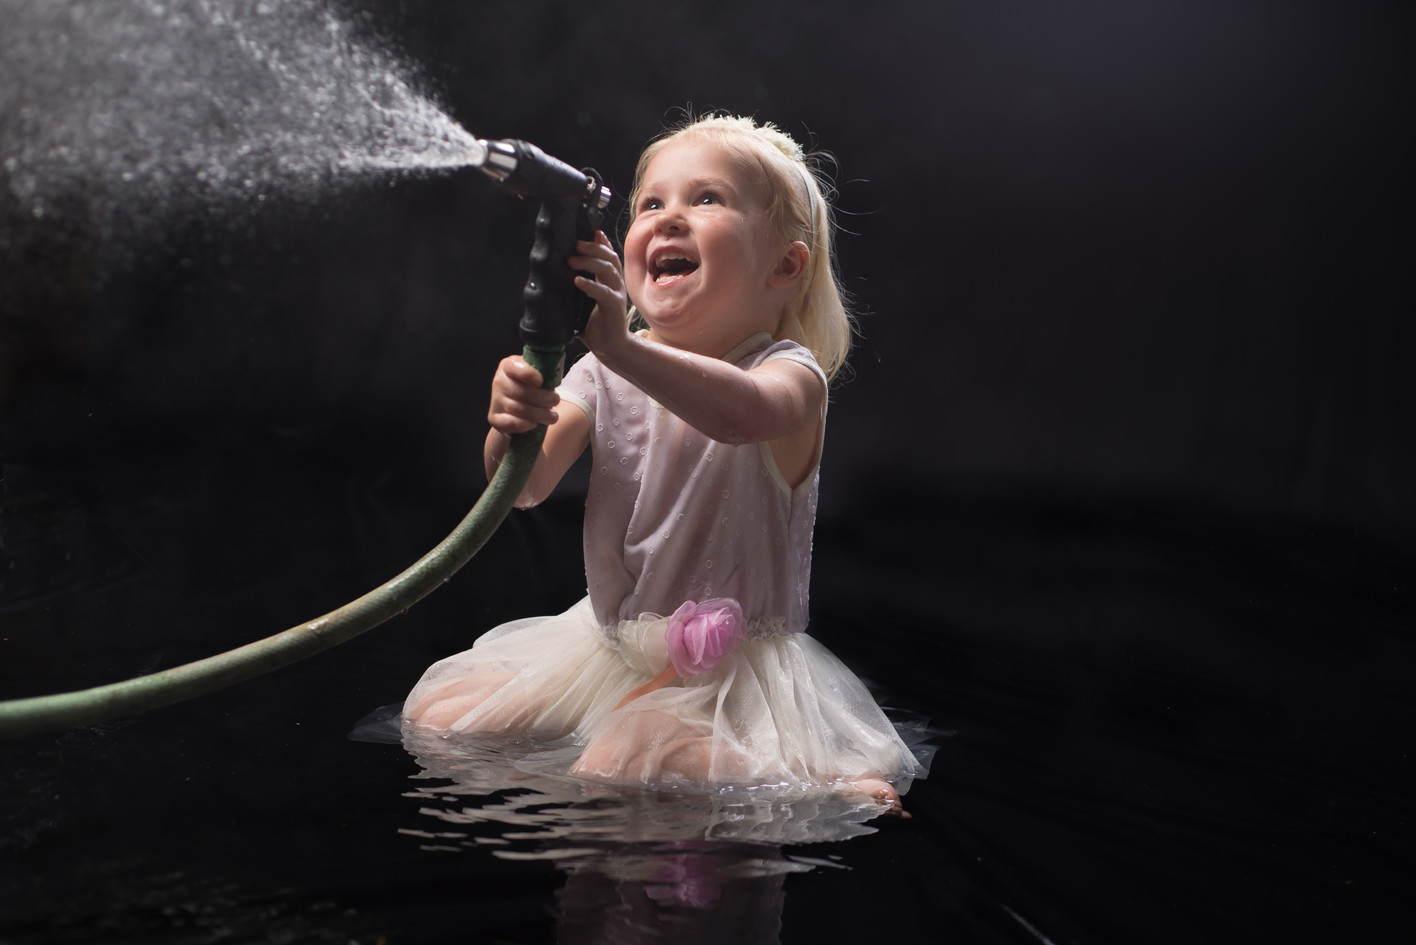 Laughing child spraying a hose